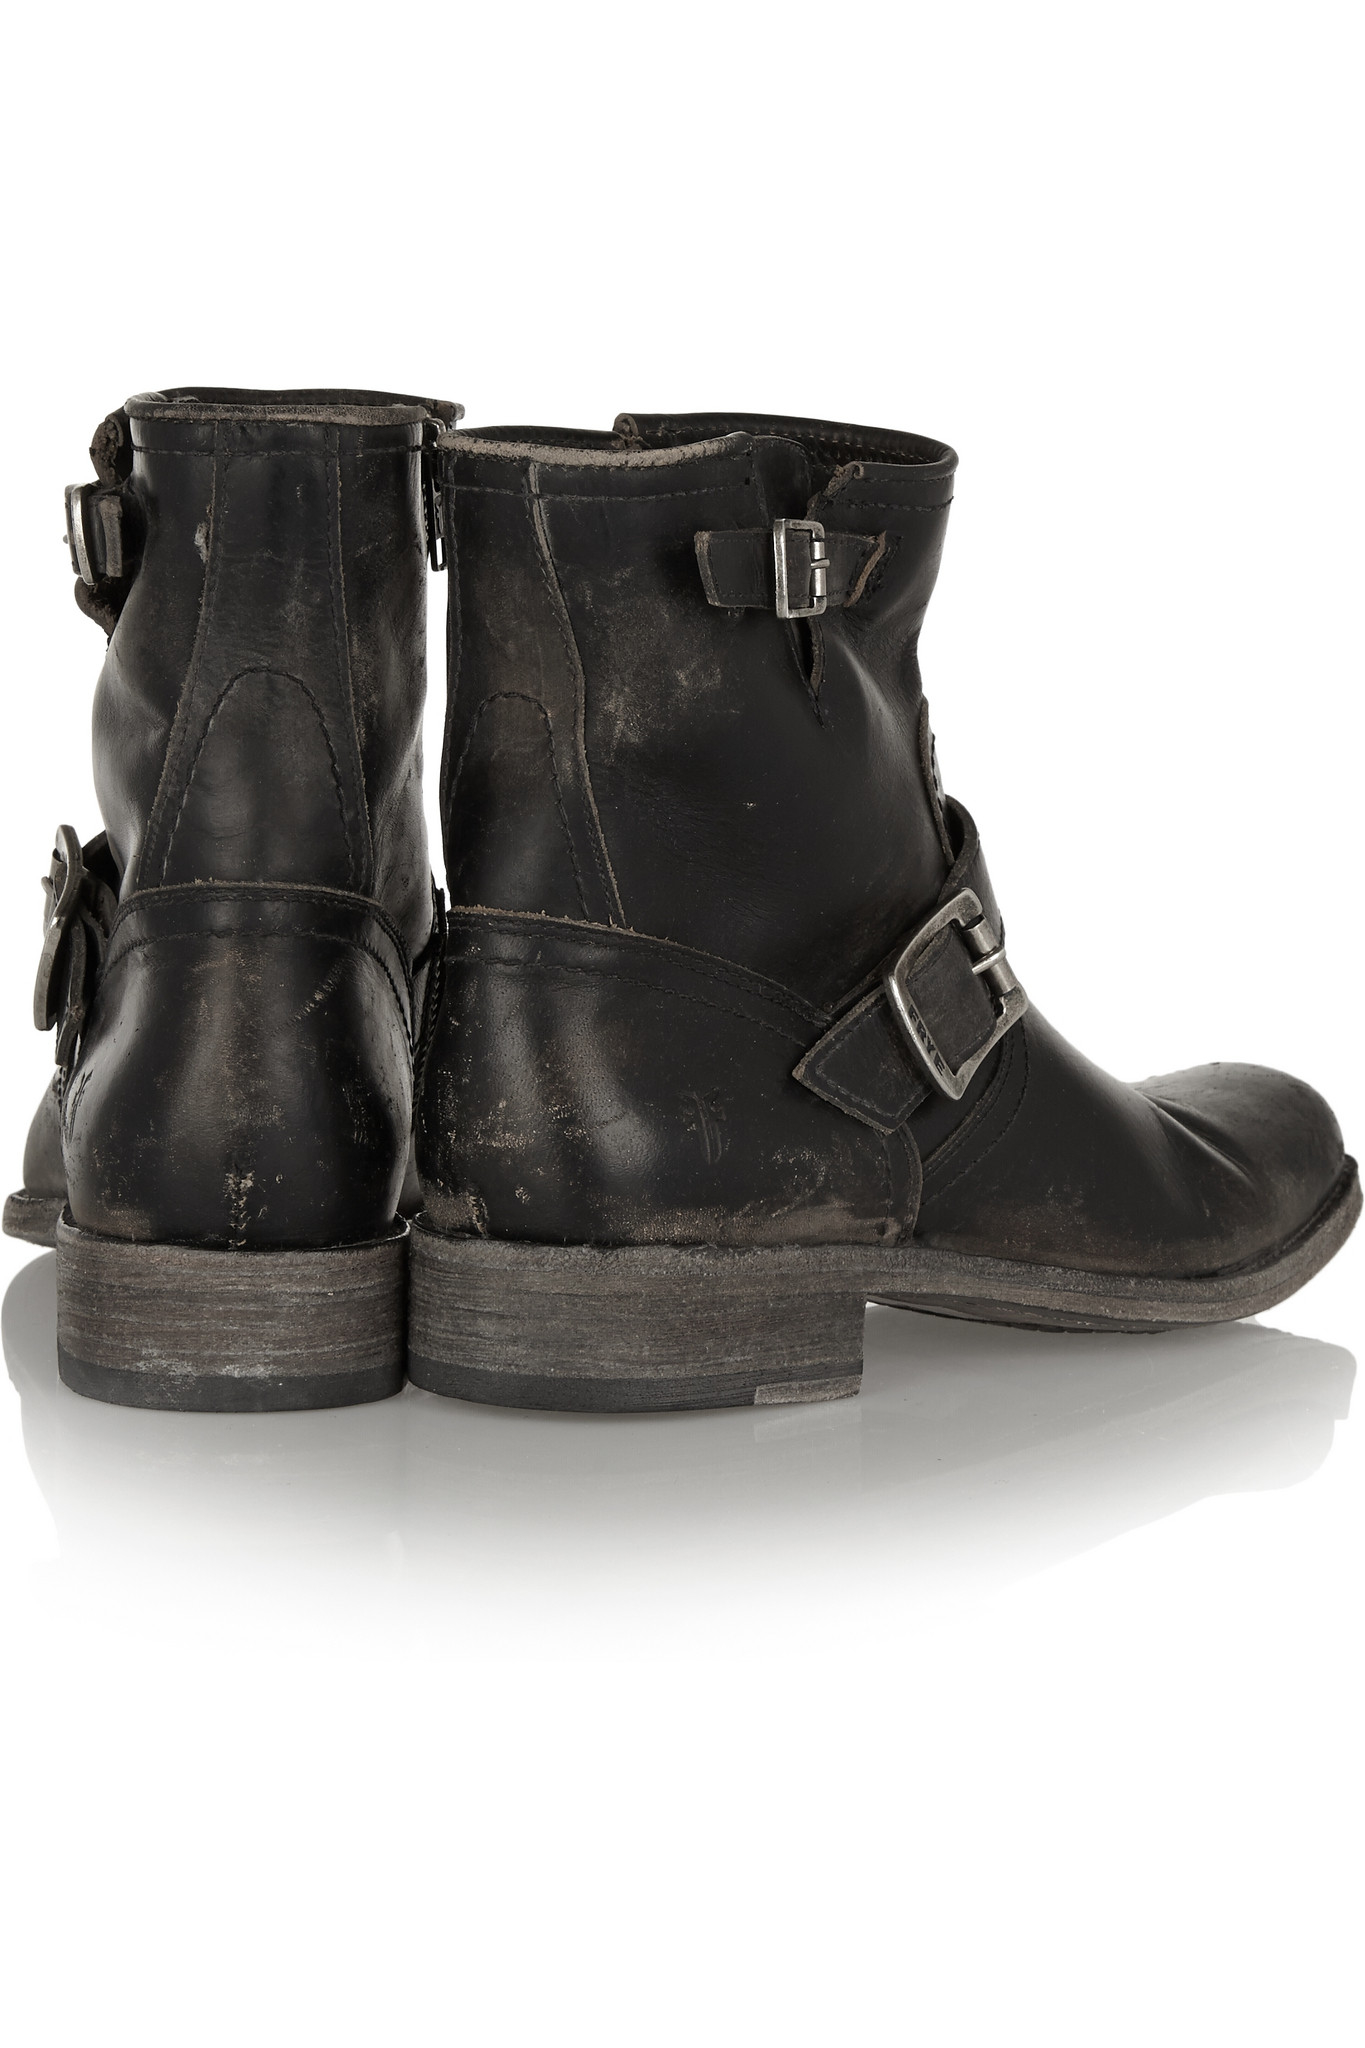 Frye Smith Leather Boots in Black